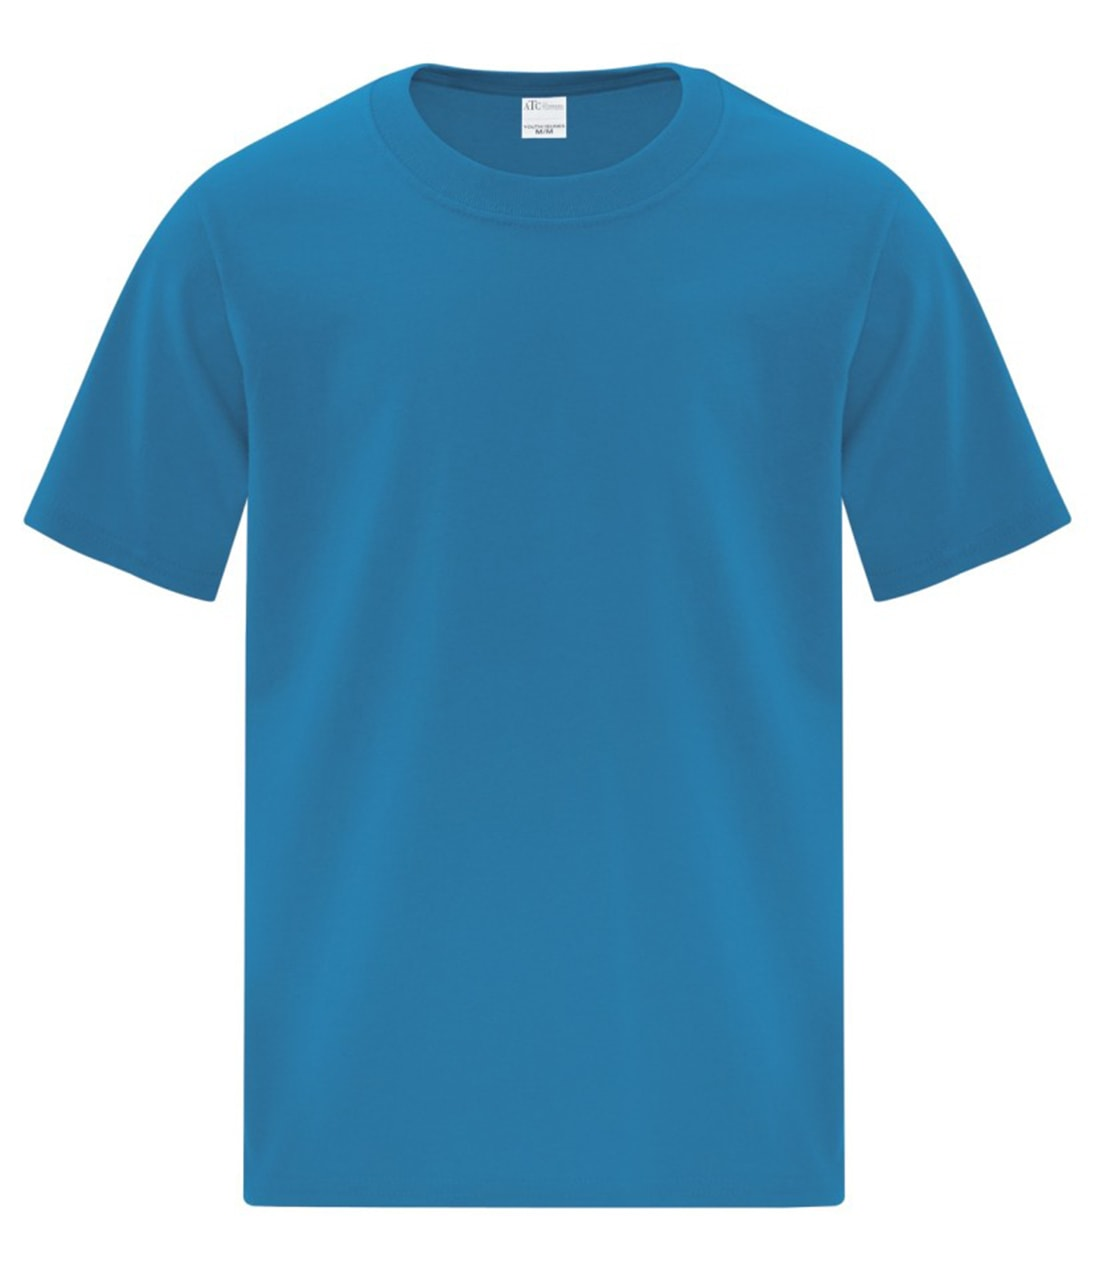 Picture of ATC Youth Everyday Cotton Tee